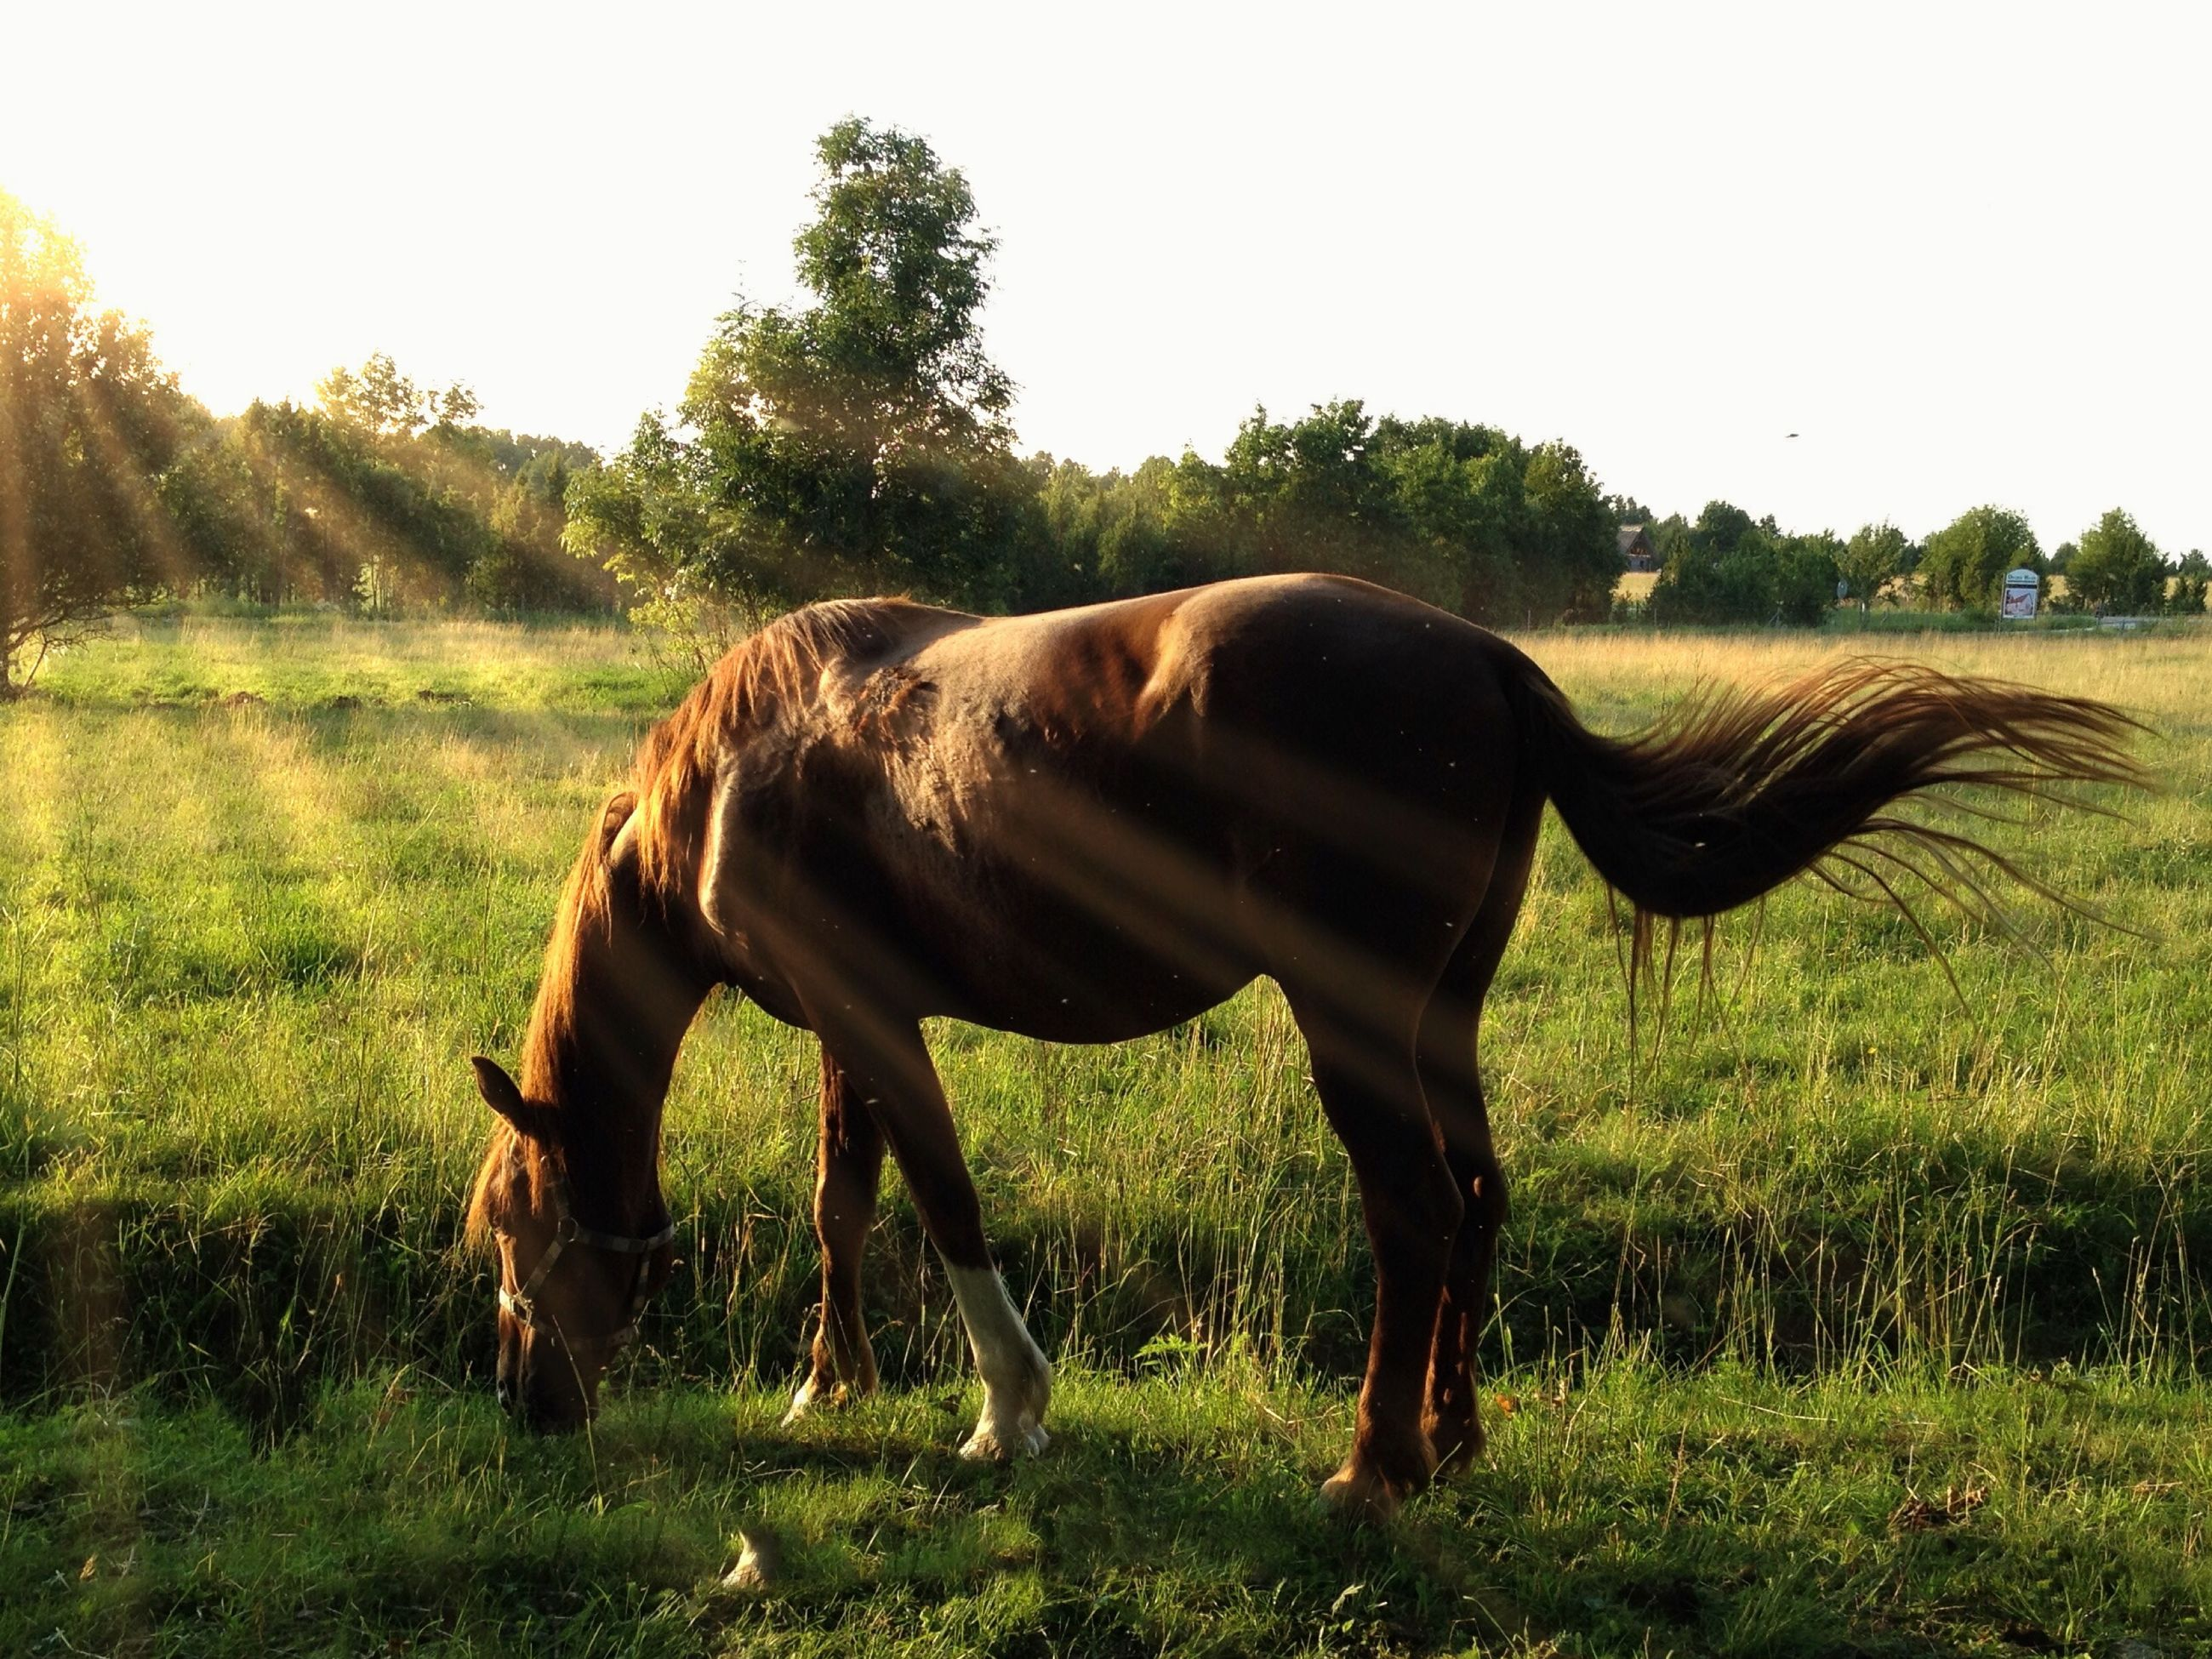 animal themes, domestic animals, mammal, grass, one animal, horse, field, full length, standing, grassy, tree, landscape, herbivorous, green color, nature, walking, grazing, sunlight, side view, working animal